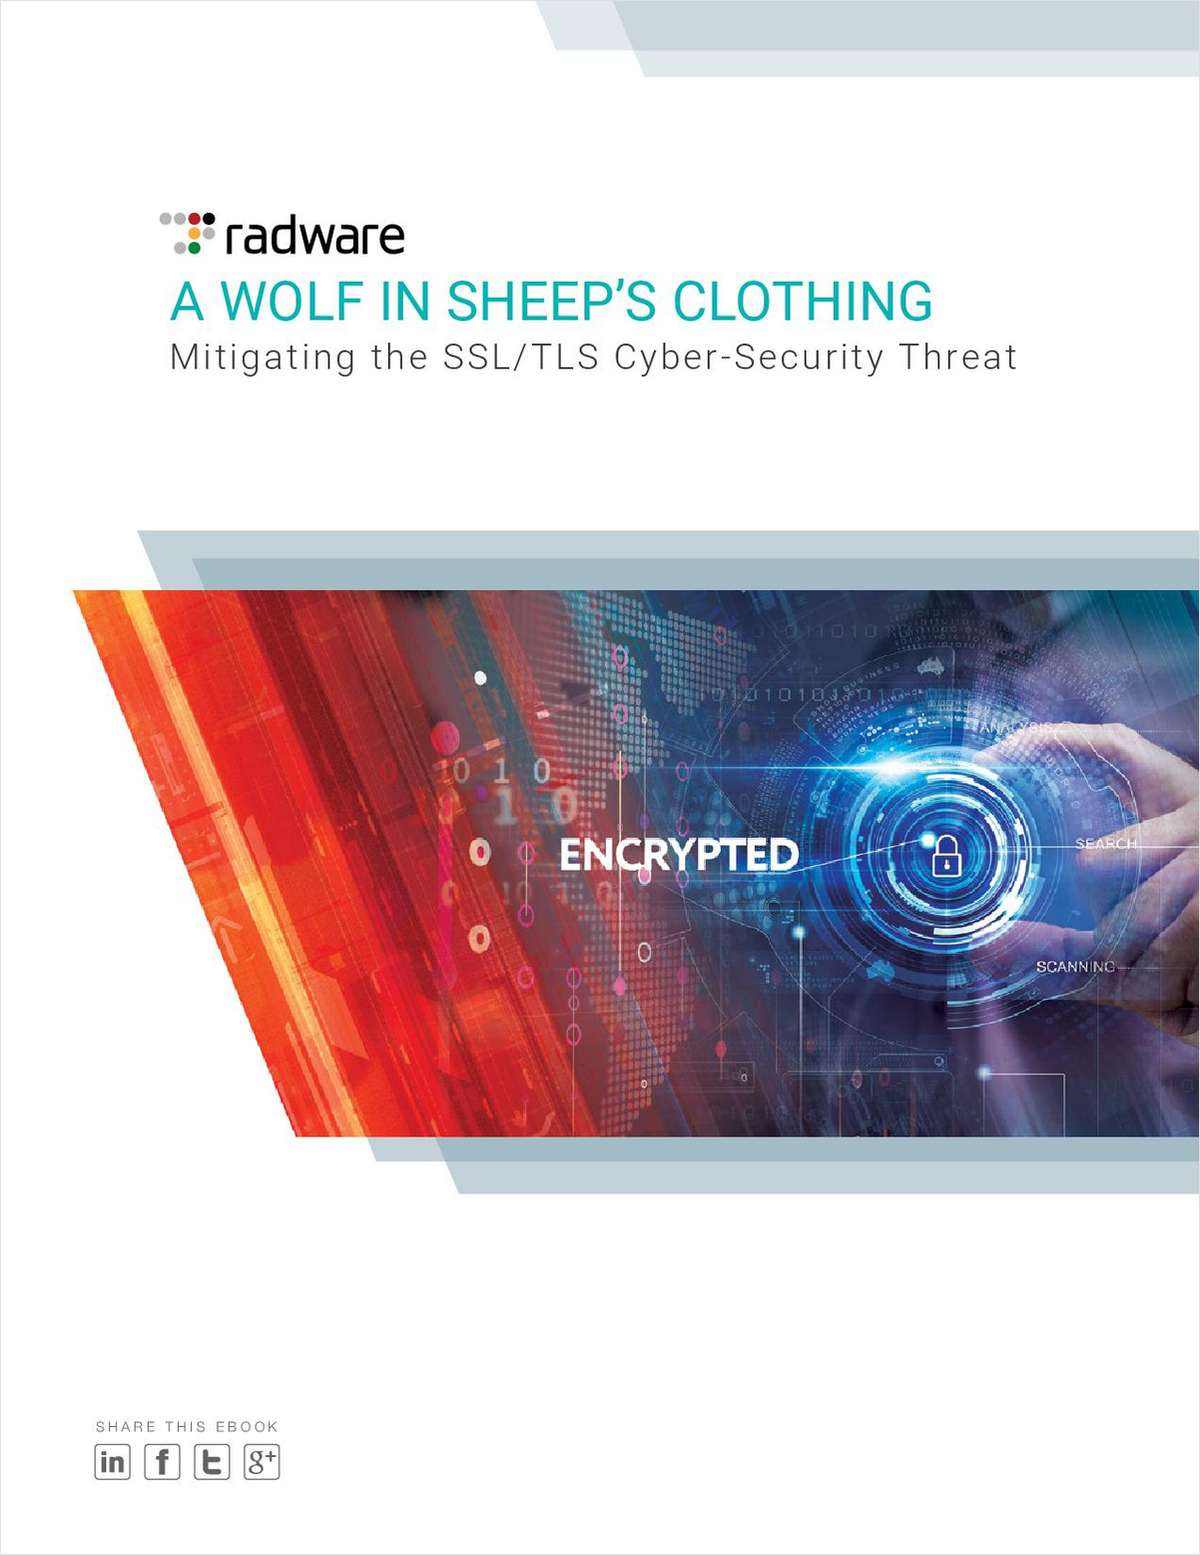 A Wolf in Sheep's Clothing: Mitigating the SSL/TLS Cyber-Security Threat